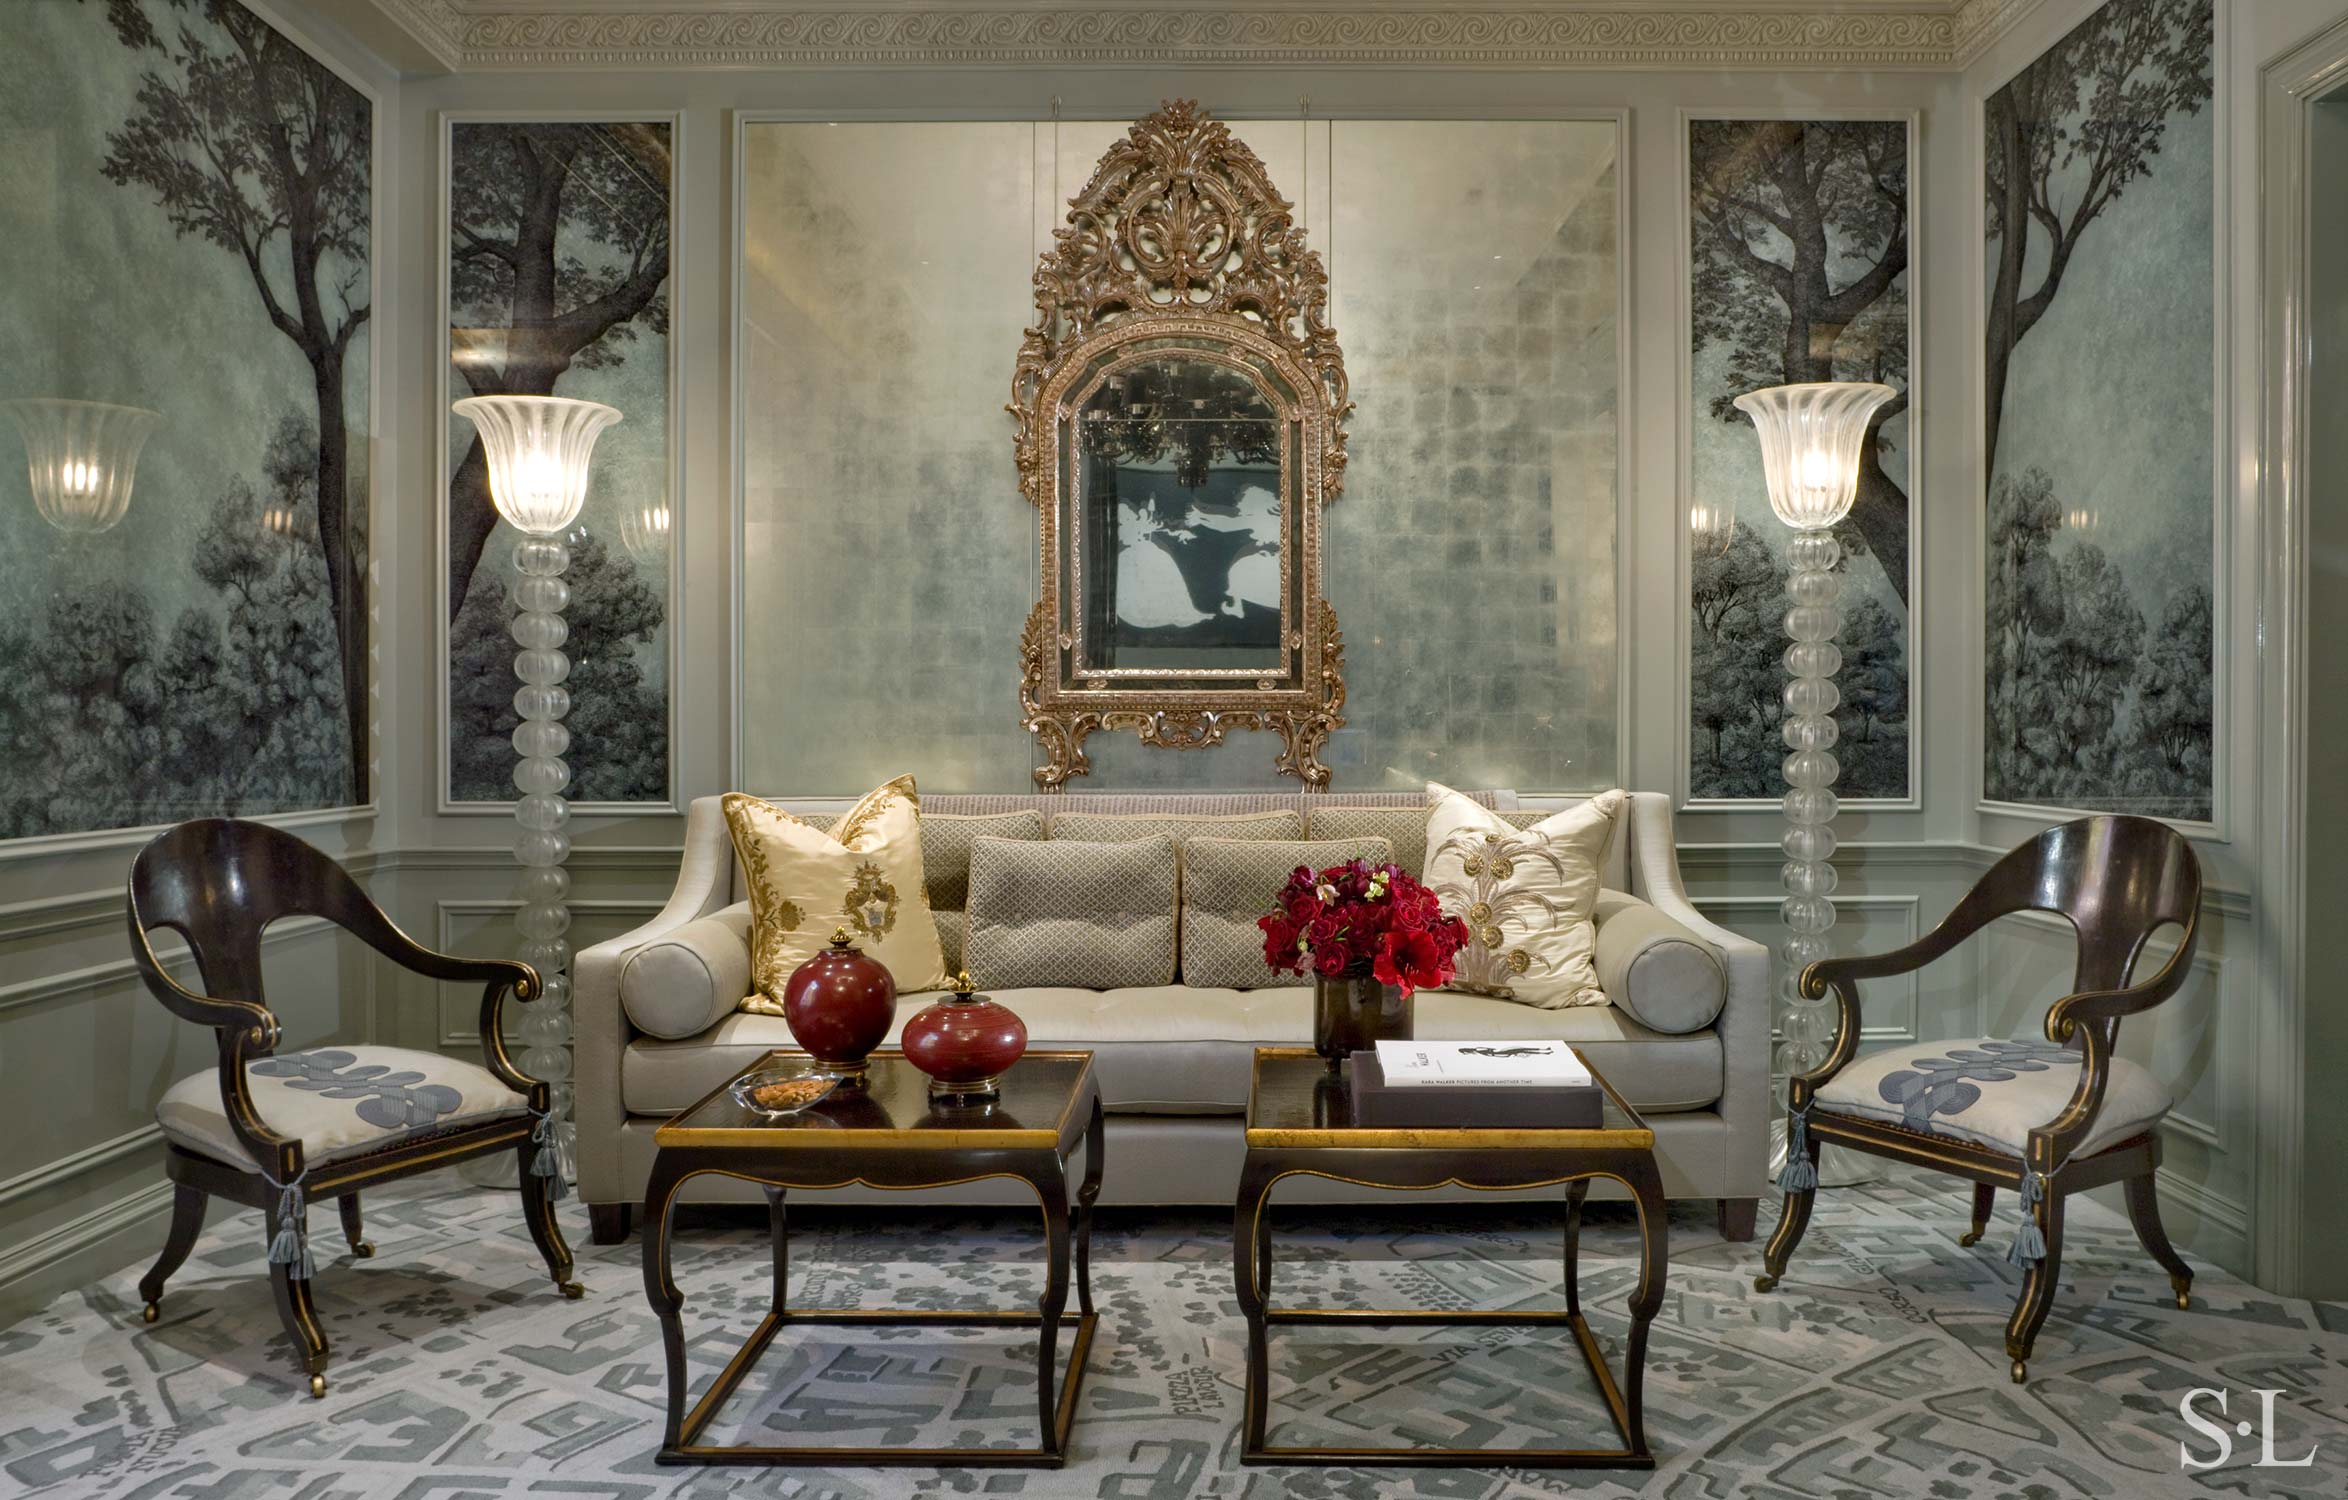 custom sofa, seat upholstery with tassles & decorative throw pillows  Interior Architecture & Design: Suzanne Lovell, Inc.